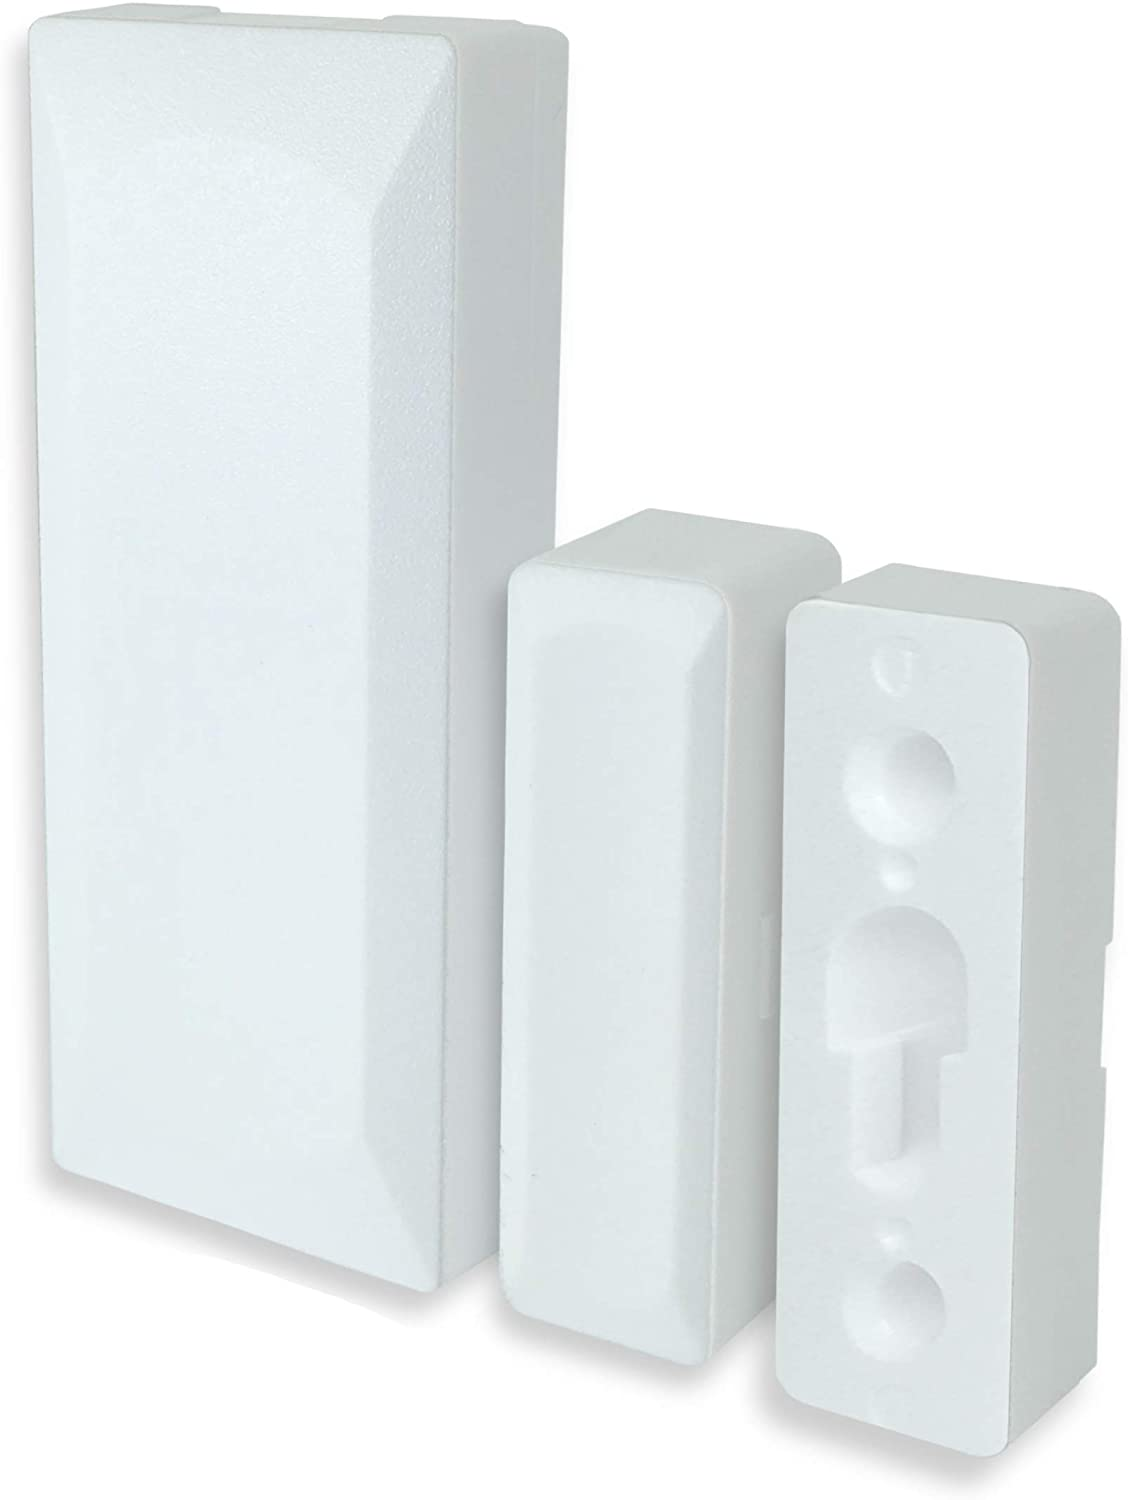 Vivint Smart Ring Home Security System